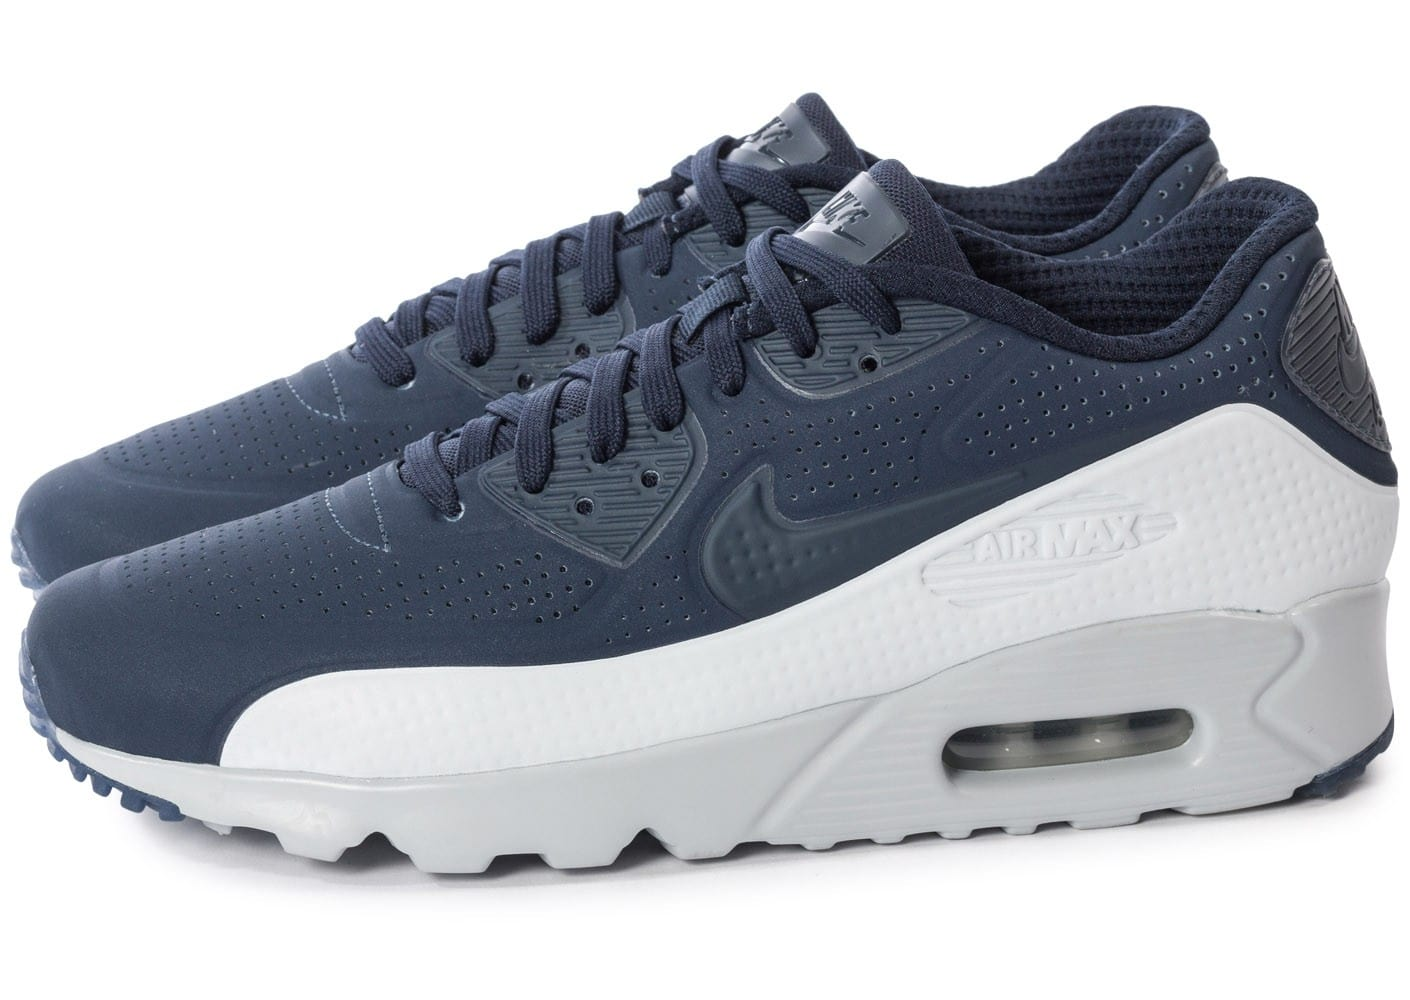 best sneakers 85fb1 ee8a8 Cliquez pour zoomer Chaussures Nike Air Max 90 Ultra Moire Obsidian vue  extérieure ...